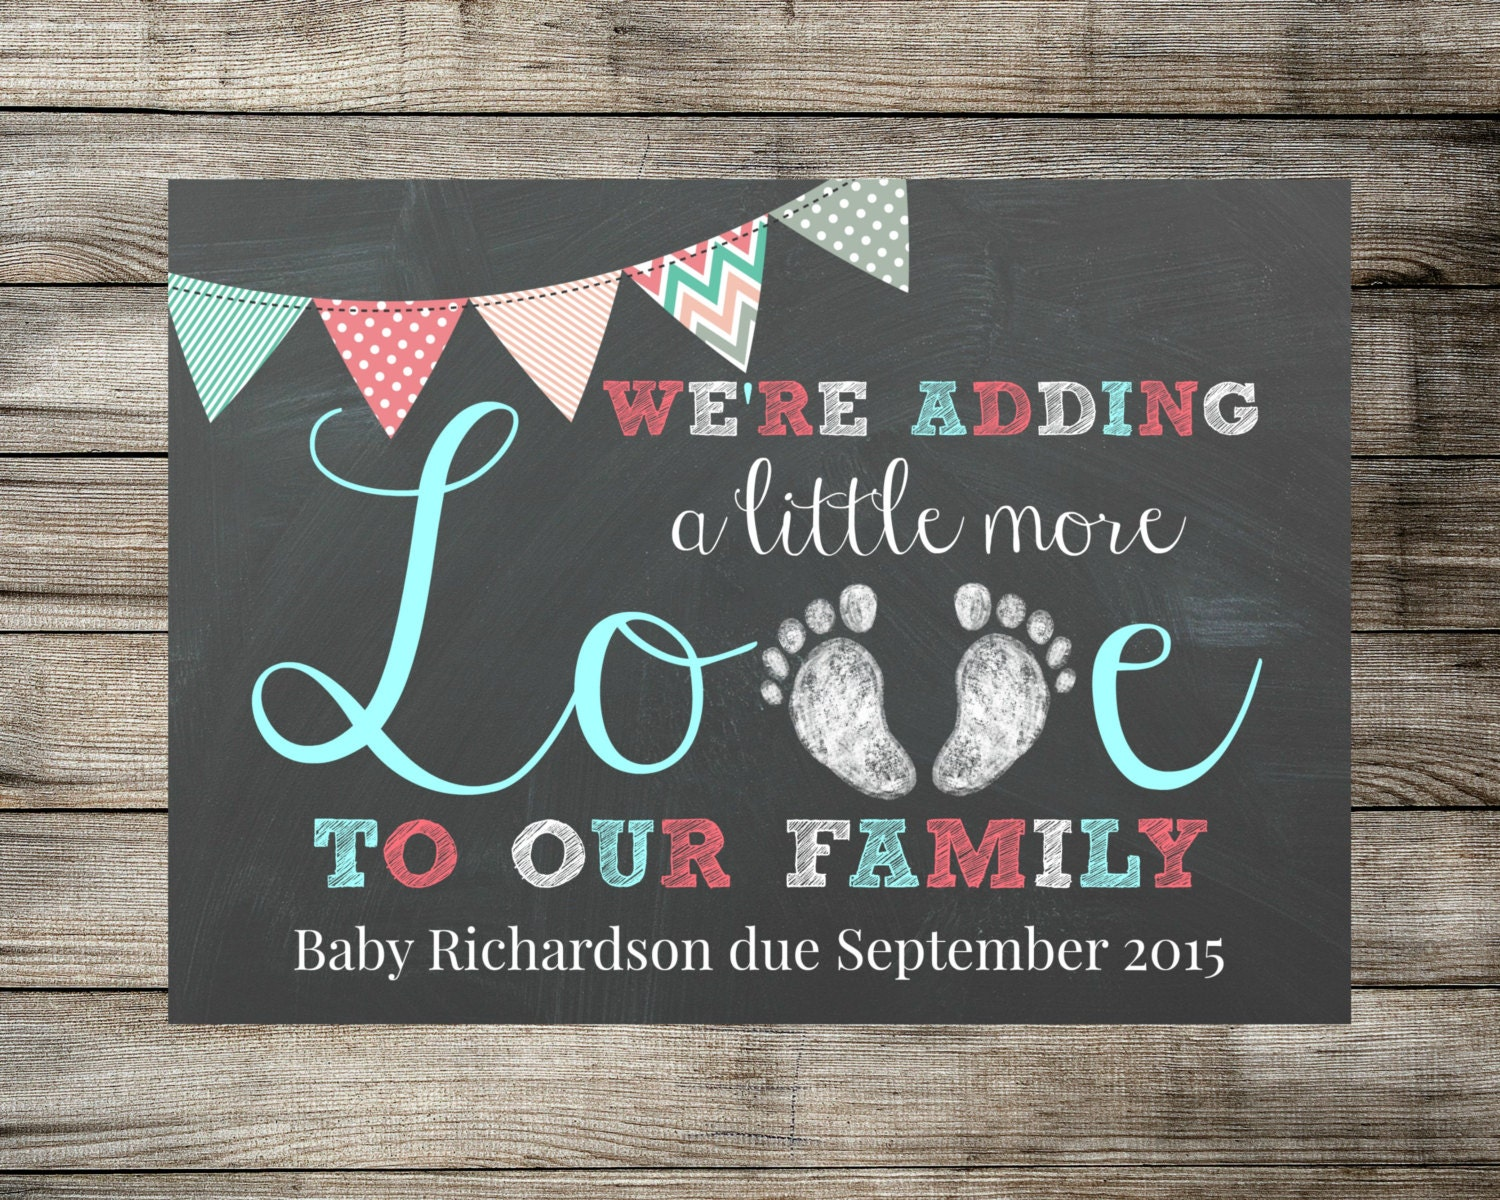 Baby Pregnancy Announcement Were Adding A Little More – Etsy Baby Announcements